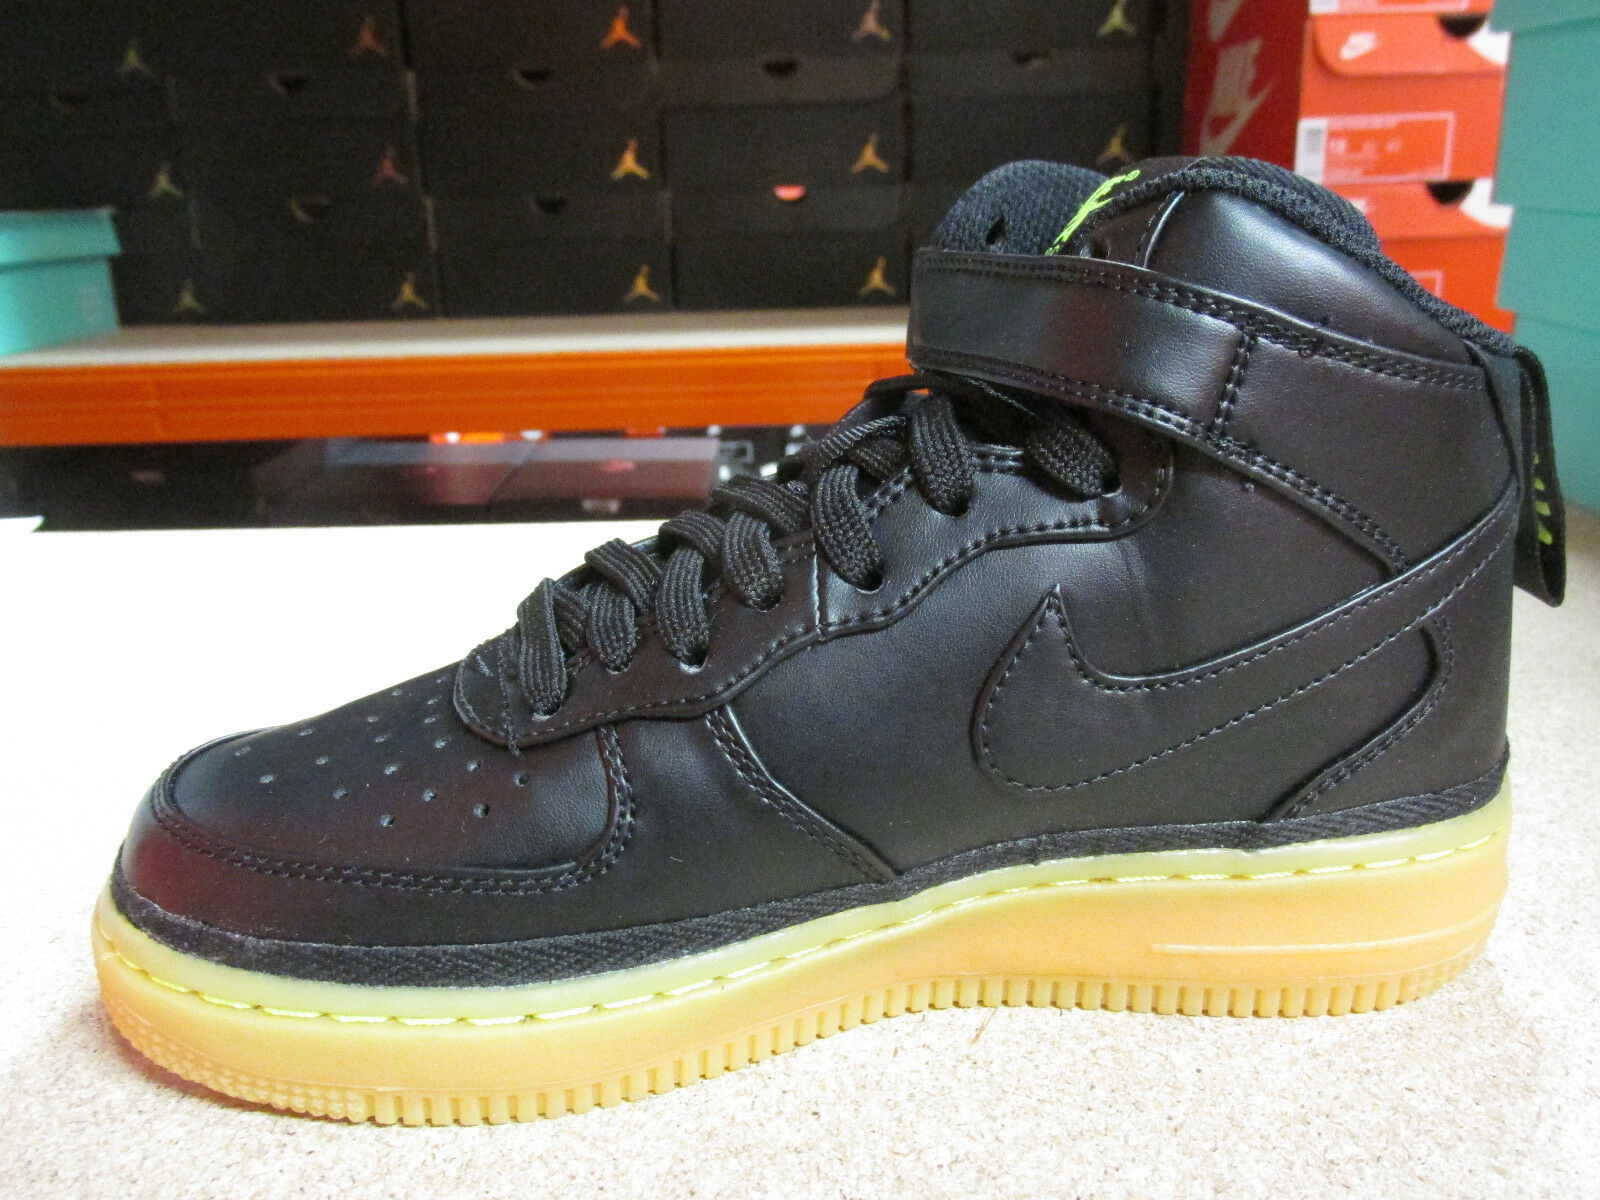 Nike Air Force 1 Mid LV8 (GS) Hi 820342 Top Trainers 820342 Hi 004 Sneakers Schuhes 2d7ca5